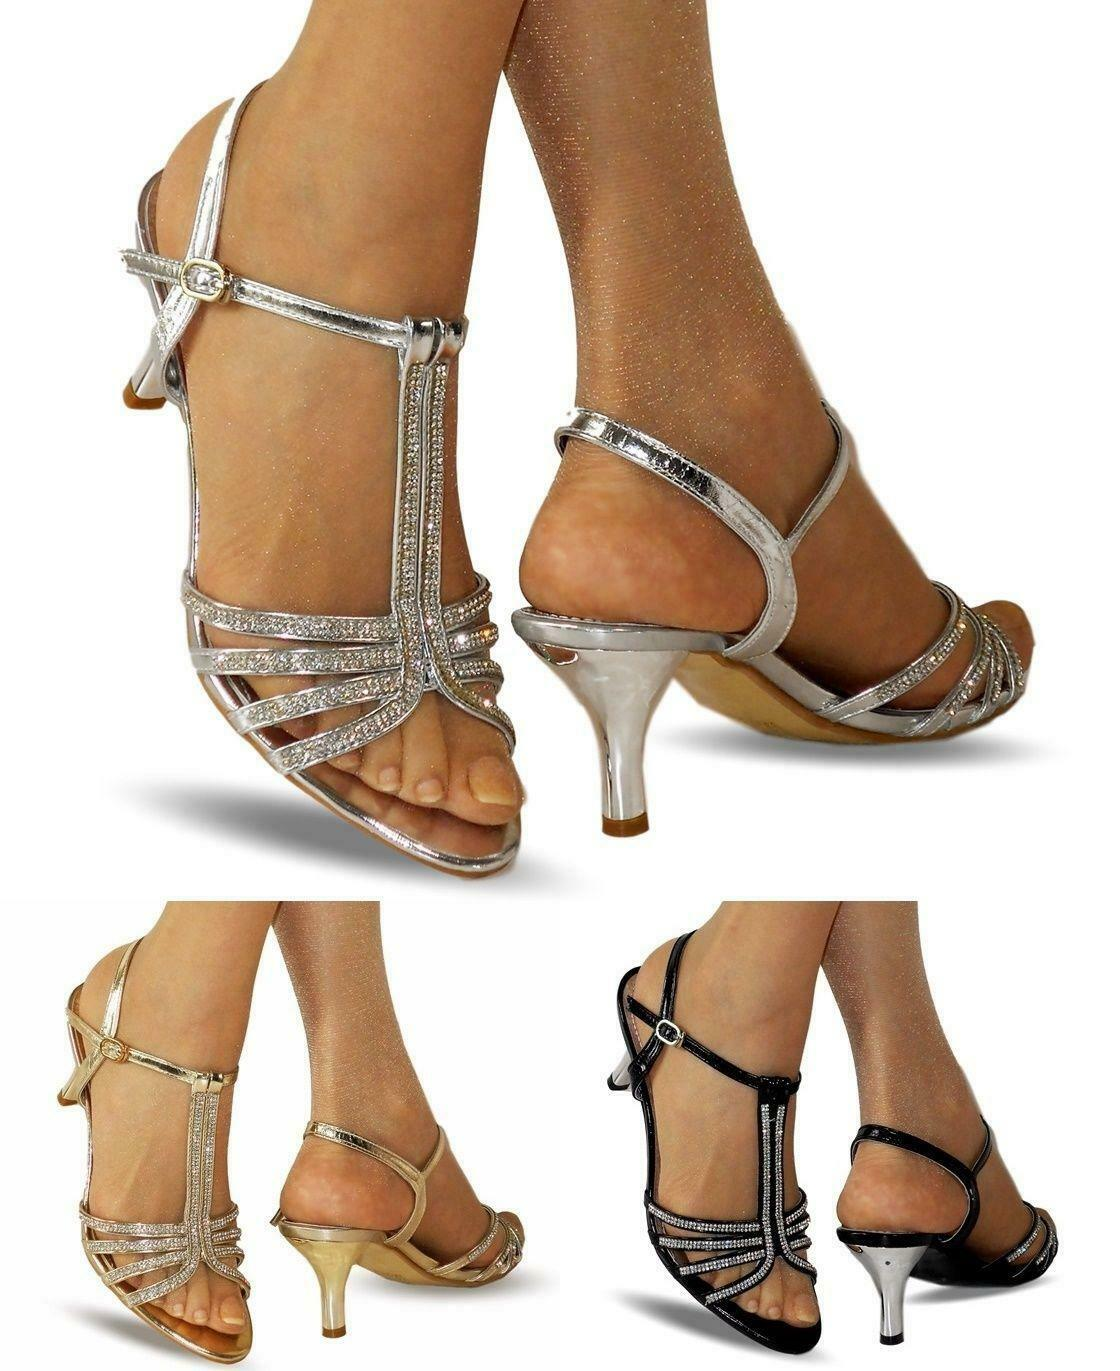 Kitten Heel Shoes With Ankle Strap